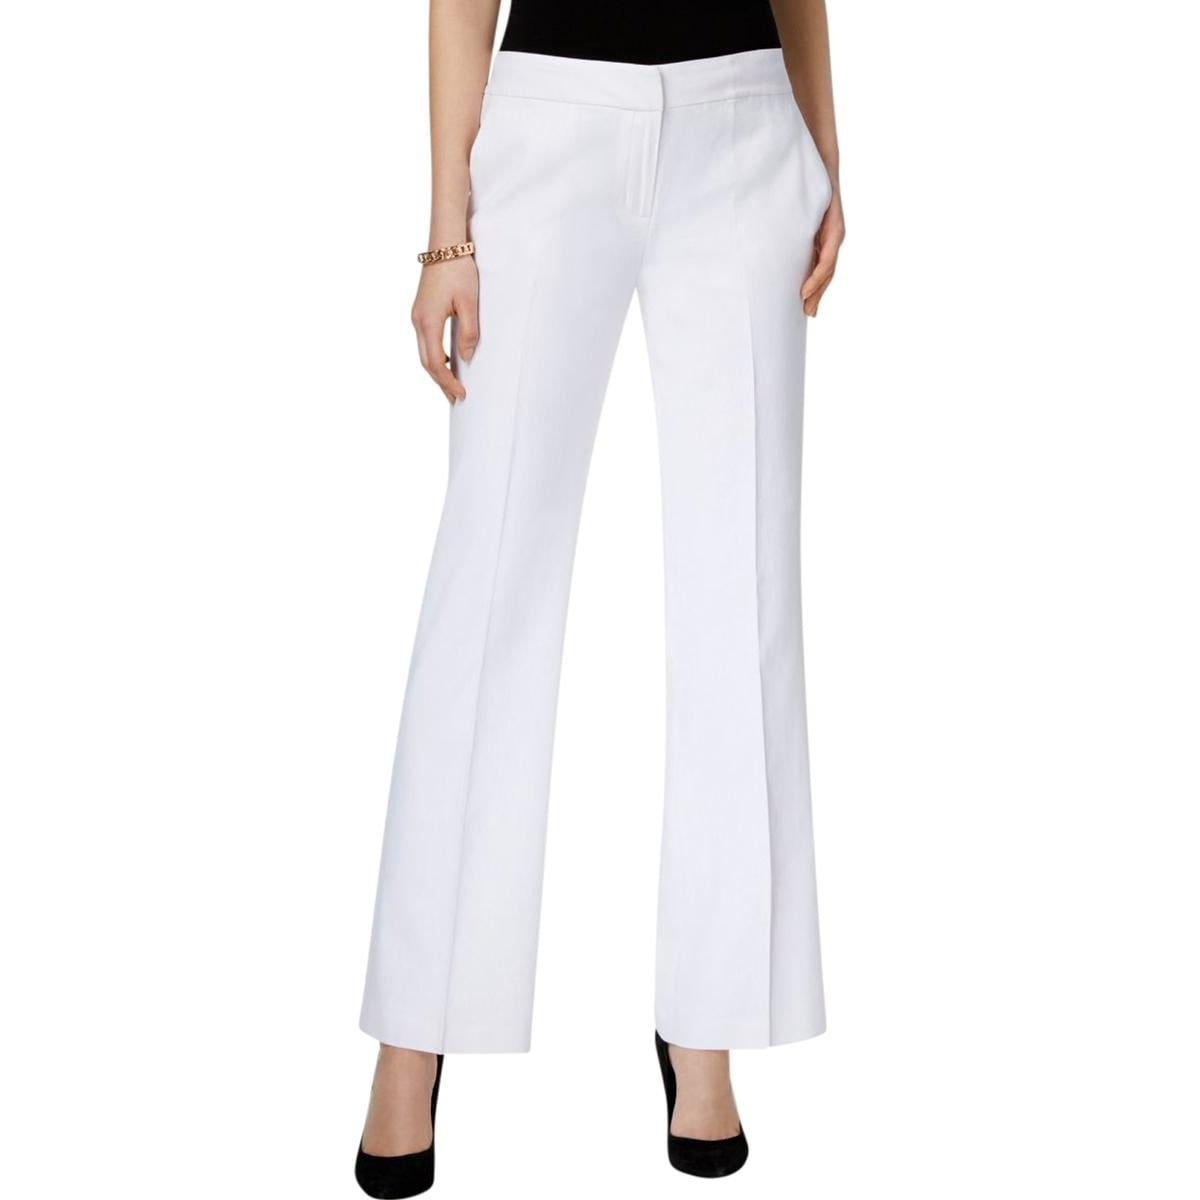 Shop Nine West Womens The Neo Classic Dress Pants Linen Straight Leg - Free  Shipping On Orders Over  45 - Overstock.com - 20982912 e399ad8523